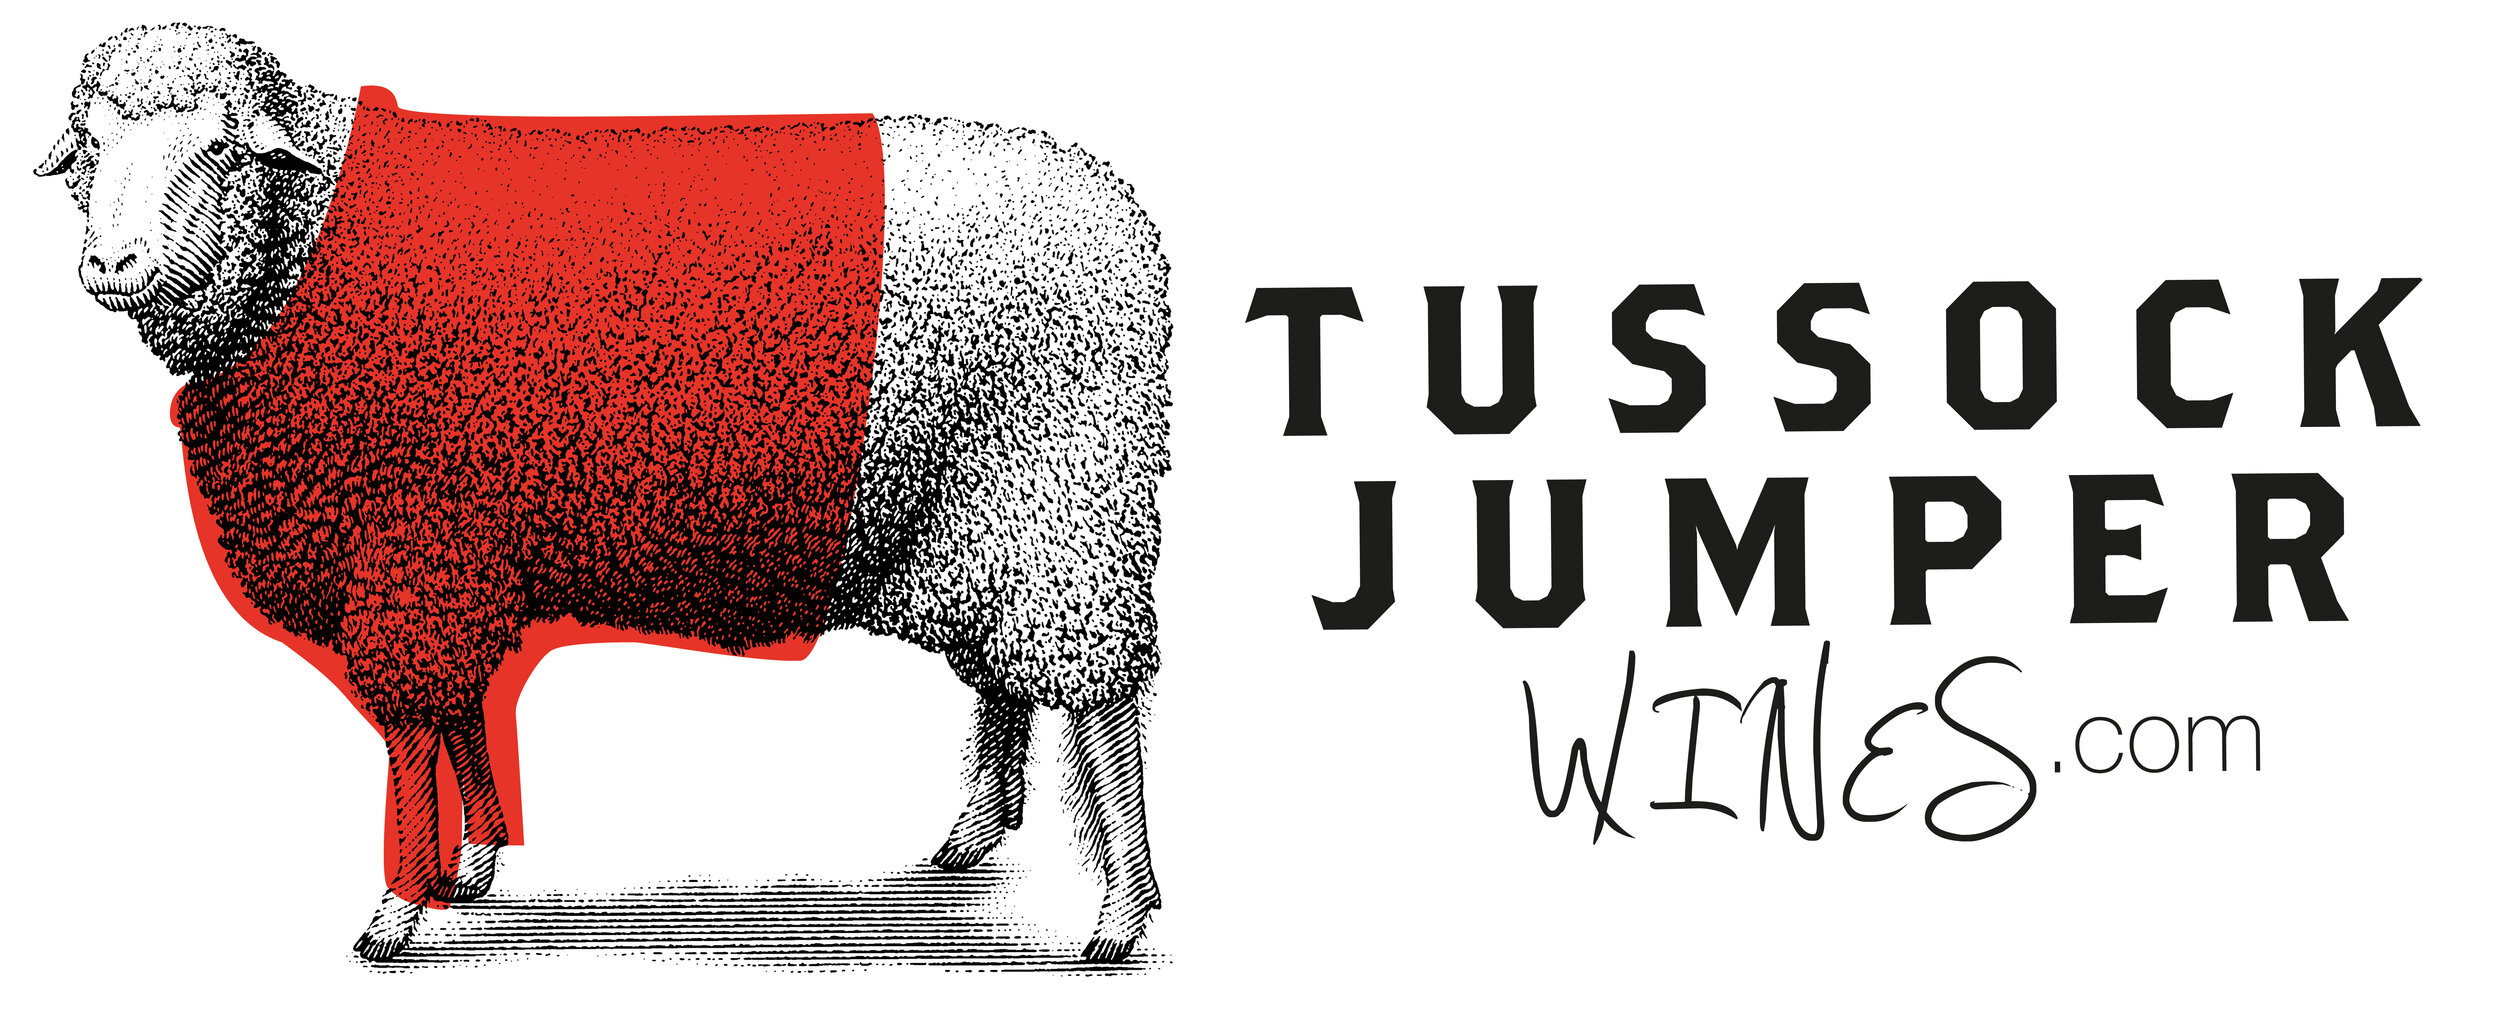 Sheep-and-TJ-wines-logo.jpg